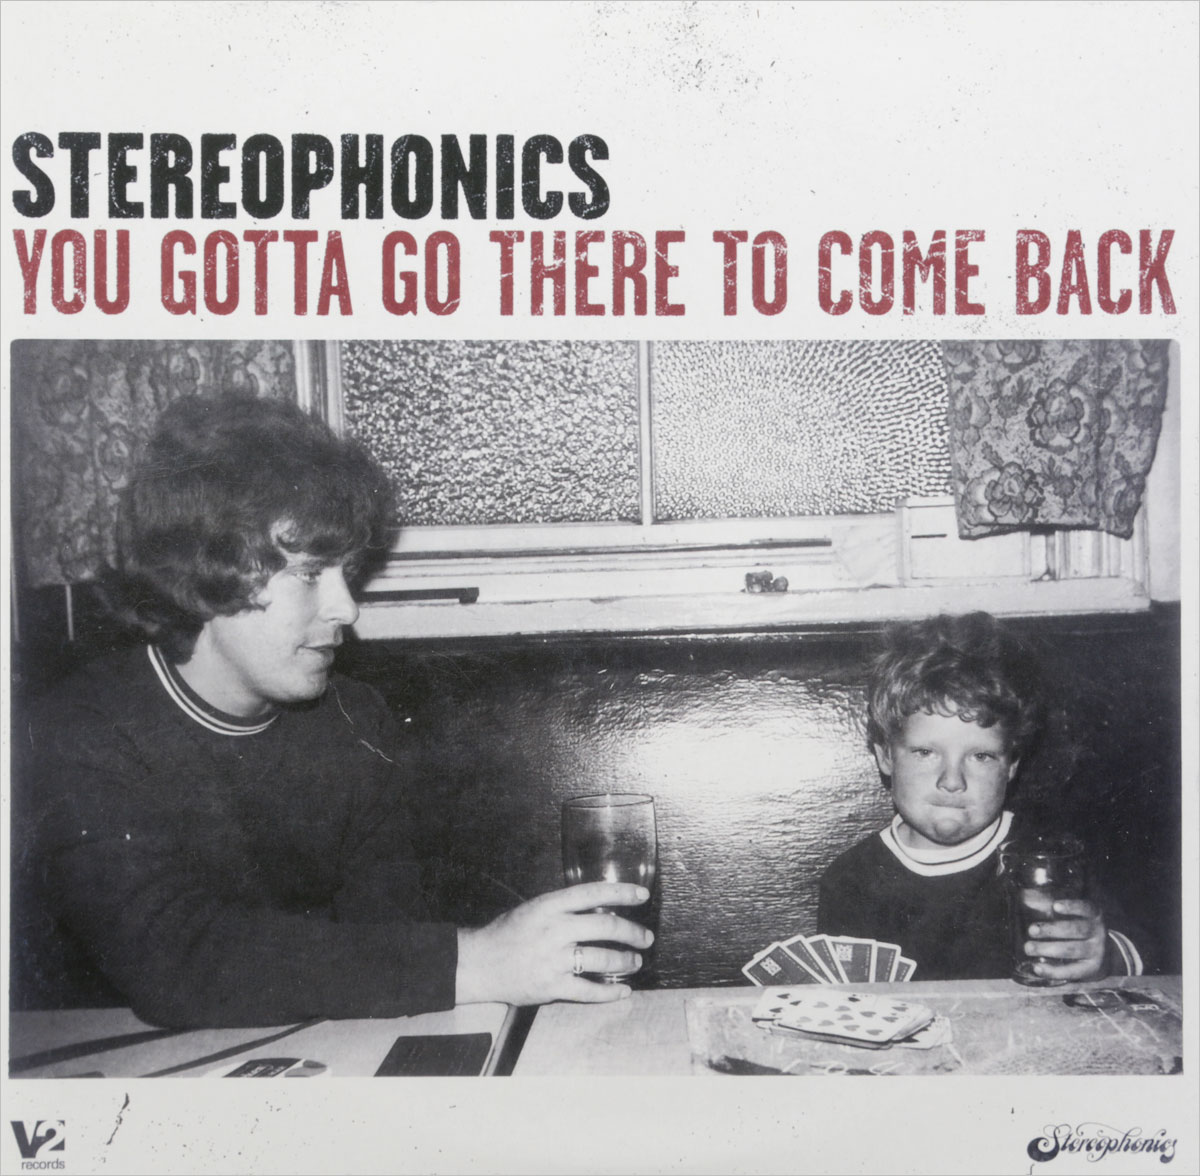 Stereophonics Stereophonics. You Gotta Go There To Come Back (2 LP) roxy music roxy music the studio albums limited edition 8 lp